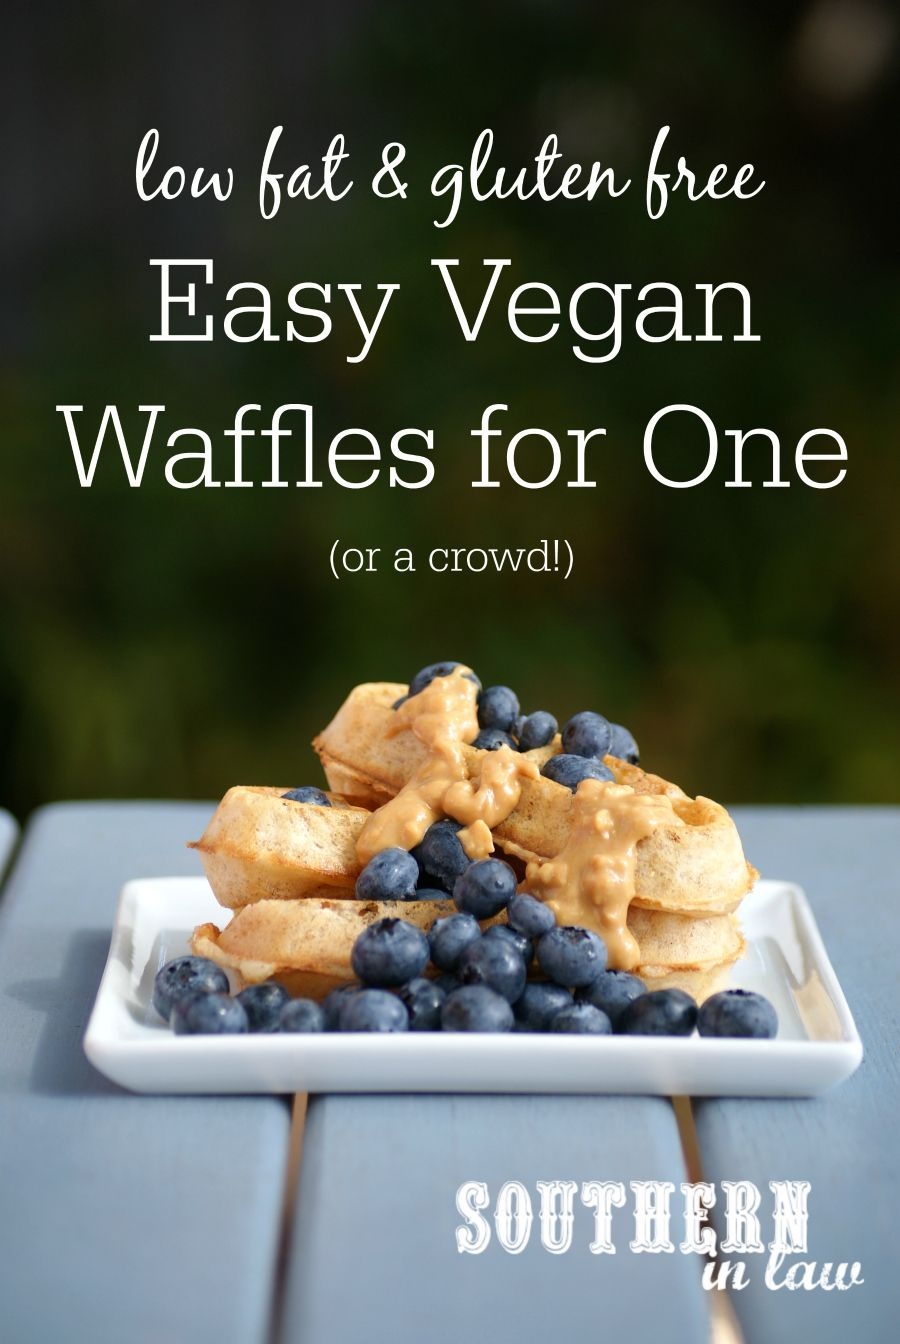 Inventive Waffle Iron Recipes You Must Try! Time to discover the waffle iron and its uses. Aside from giving you the best-tasting waffle, did you know that there are tons of recipes you can make with your waffle iron?